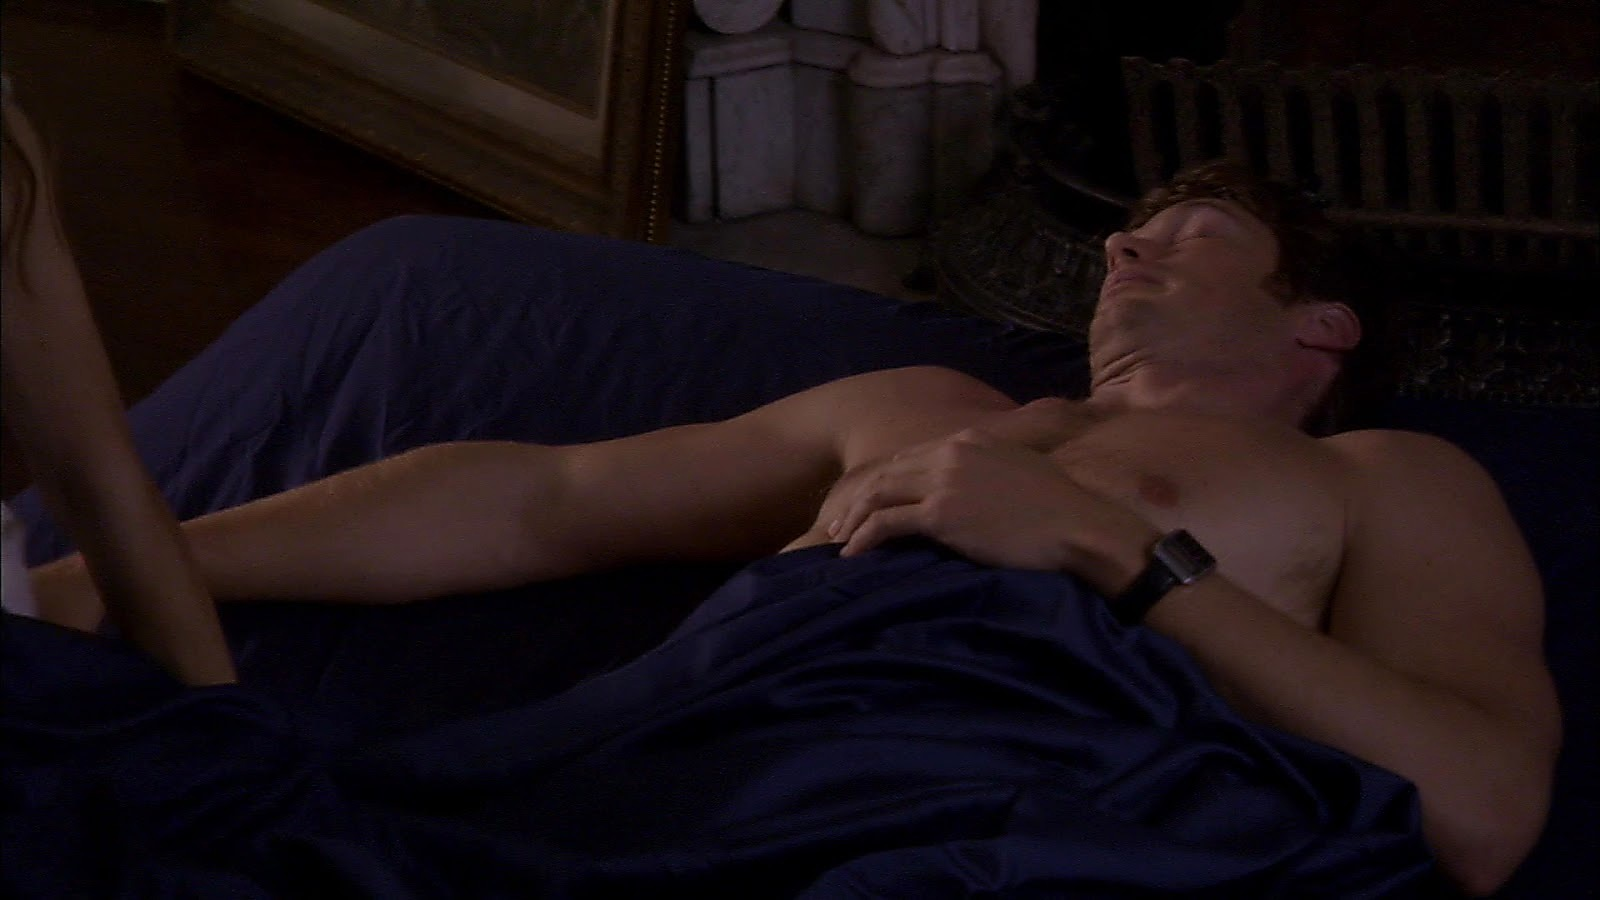 Jason Lewis sexy shirtless scene March 7, 2019, 9am